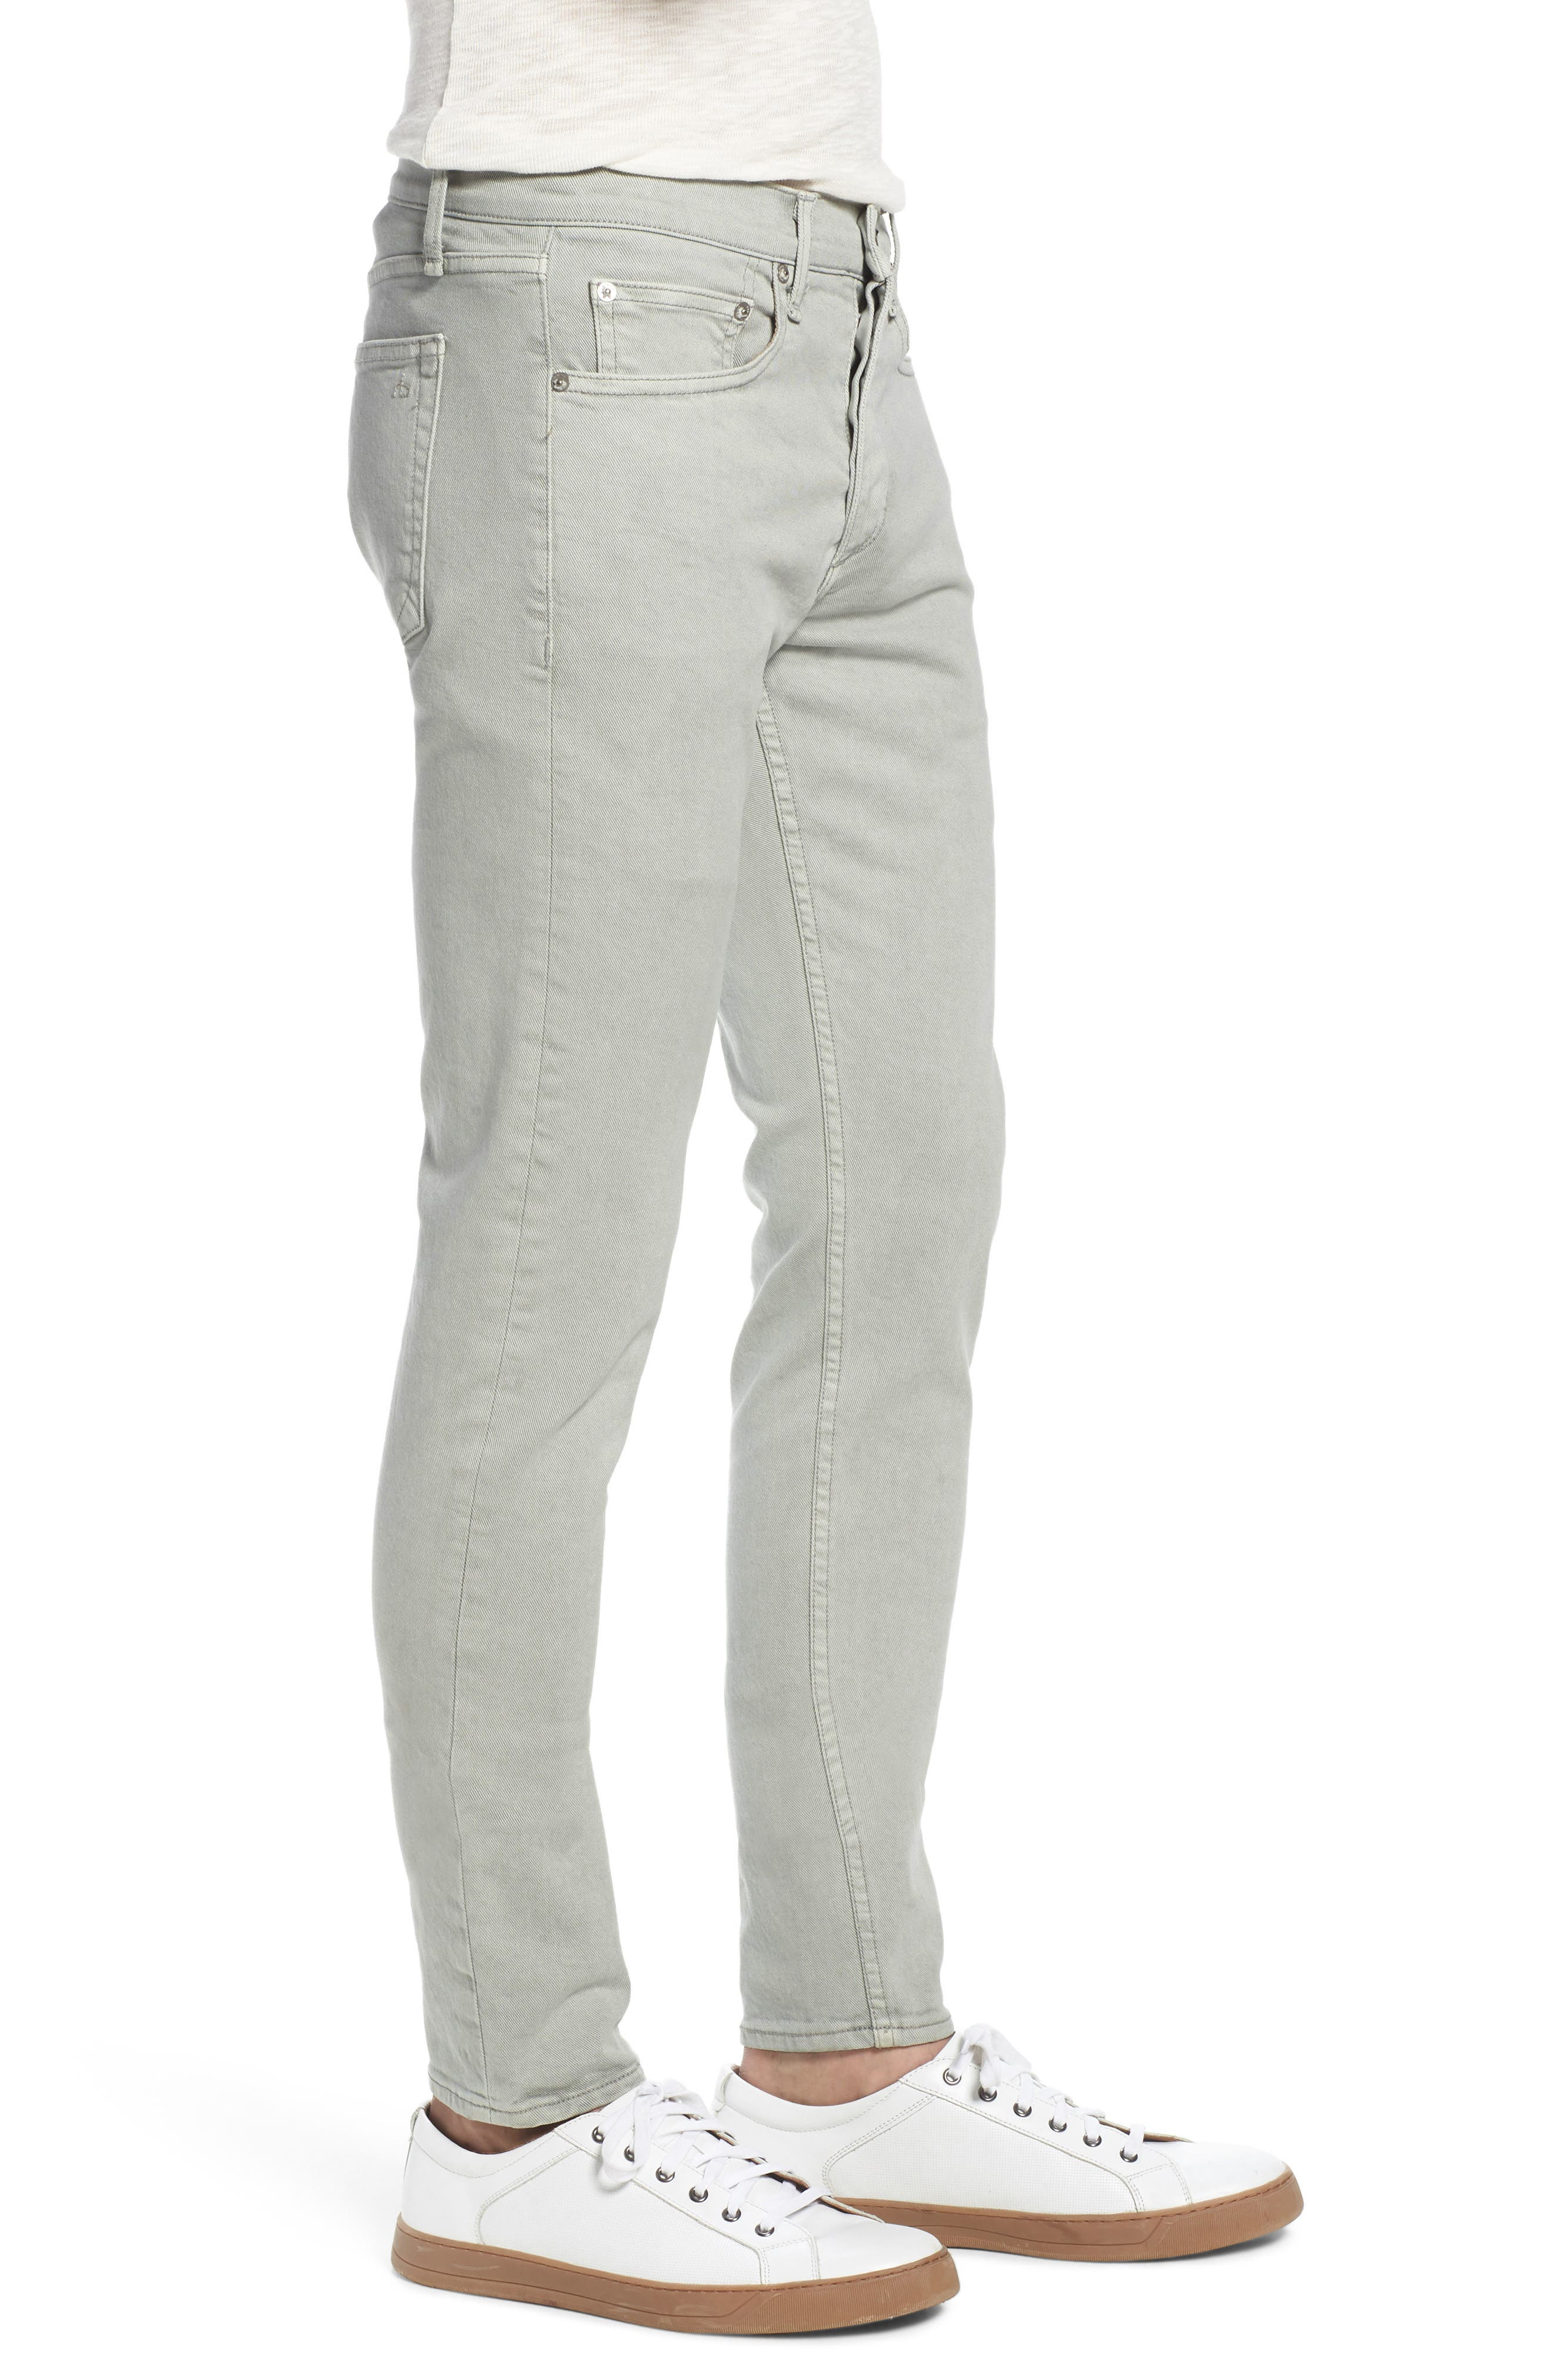 Fit 1 Skinny Fit Jeans,                             Alternate thumbnail 3, color,                             250